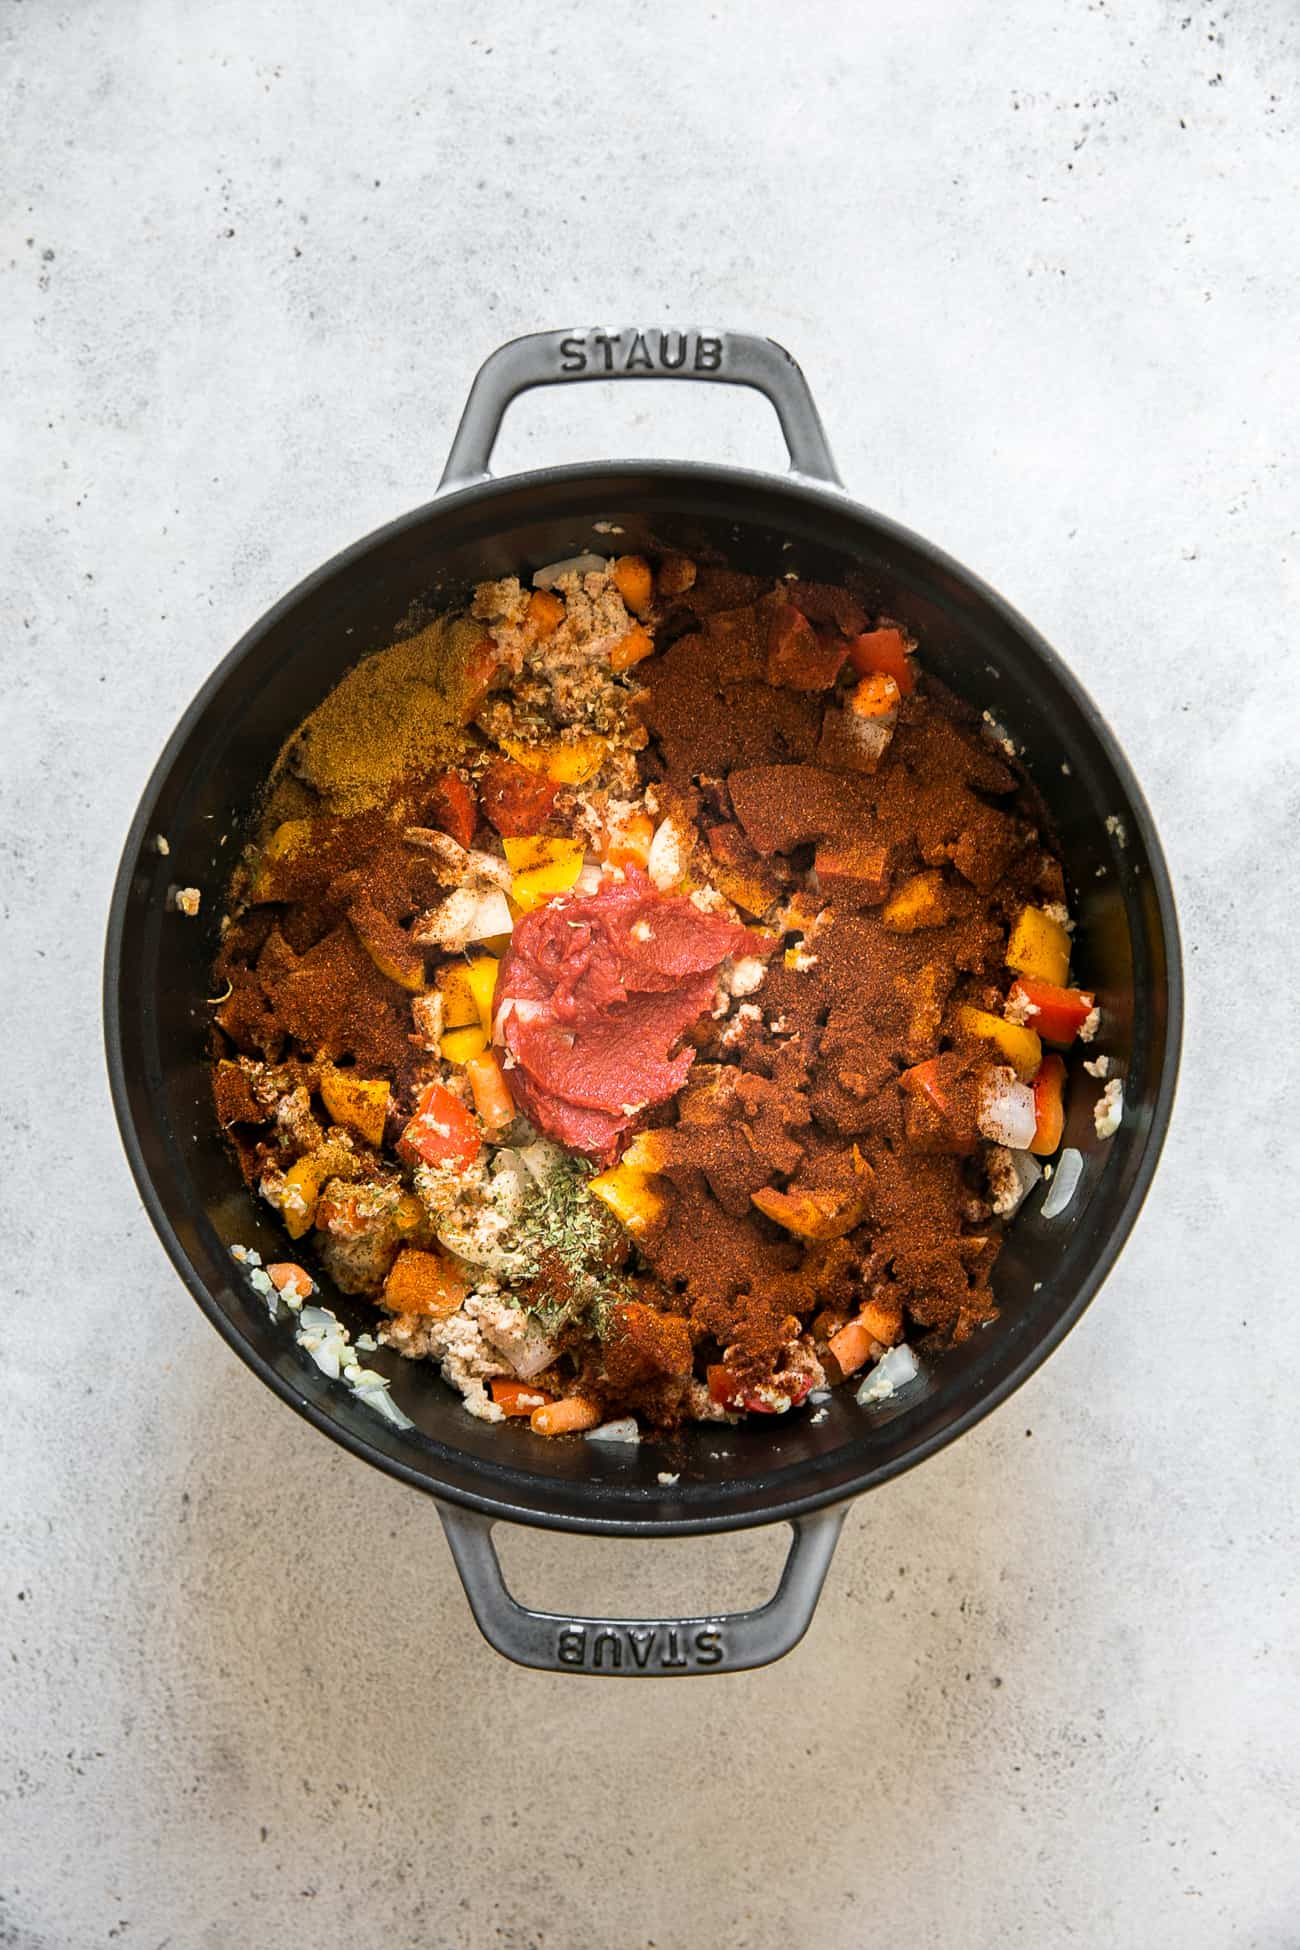 process of cooking healthy turkey chili; spices, tomato paste on top of turkey chili